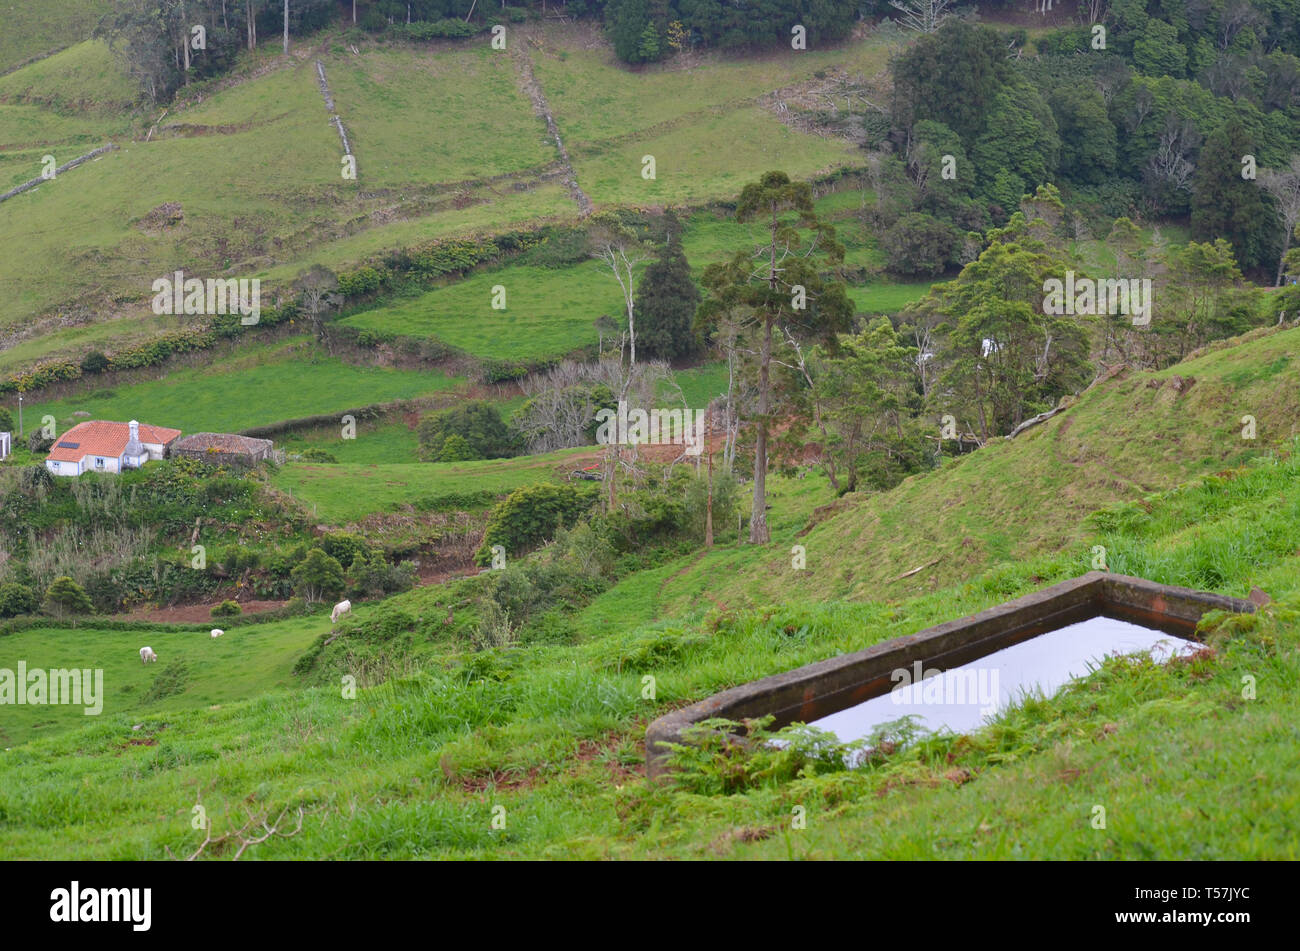 Traditional houses and rural landscapes in Santa Barbara, a small parish in the island of Santa Maria, Azores archipelago Stock Photo